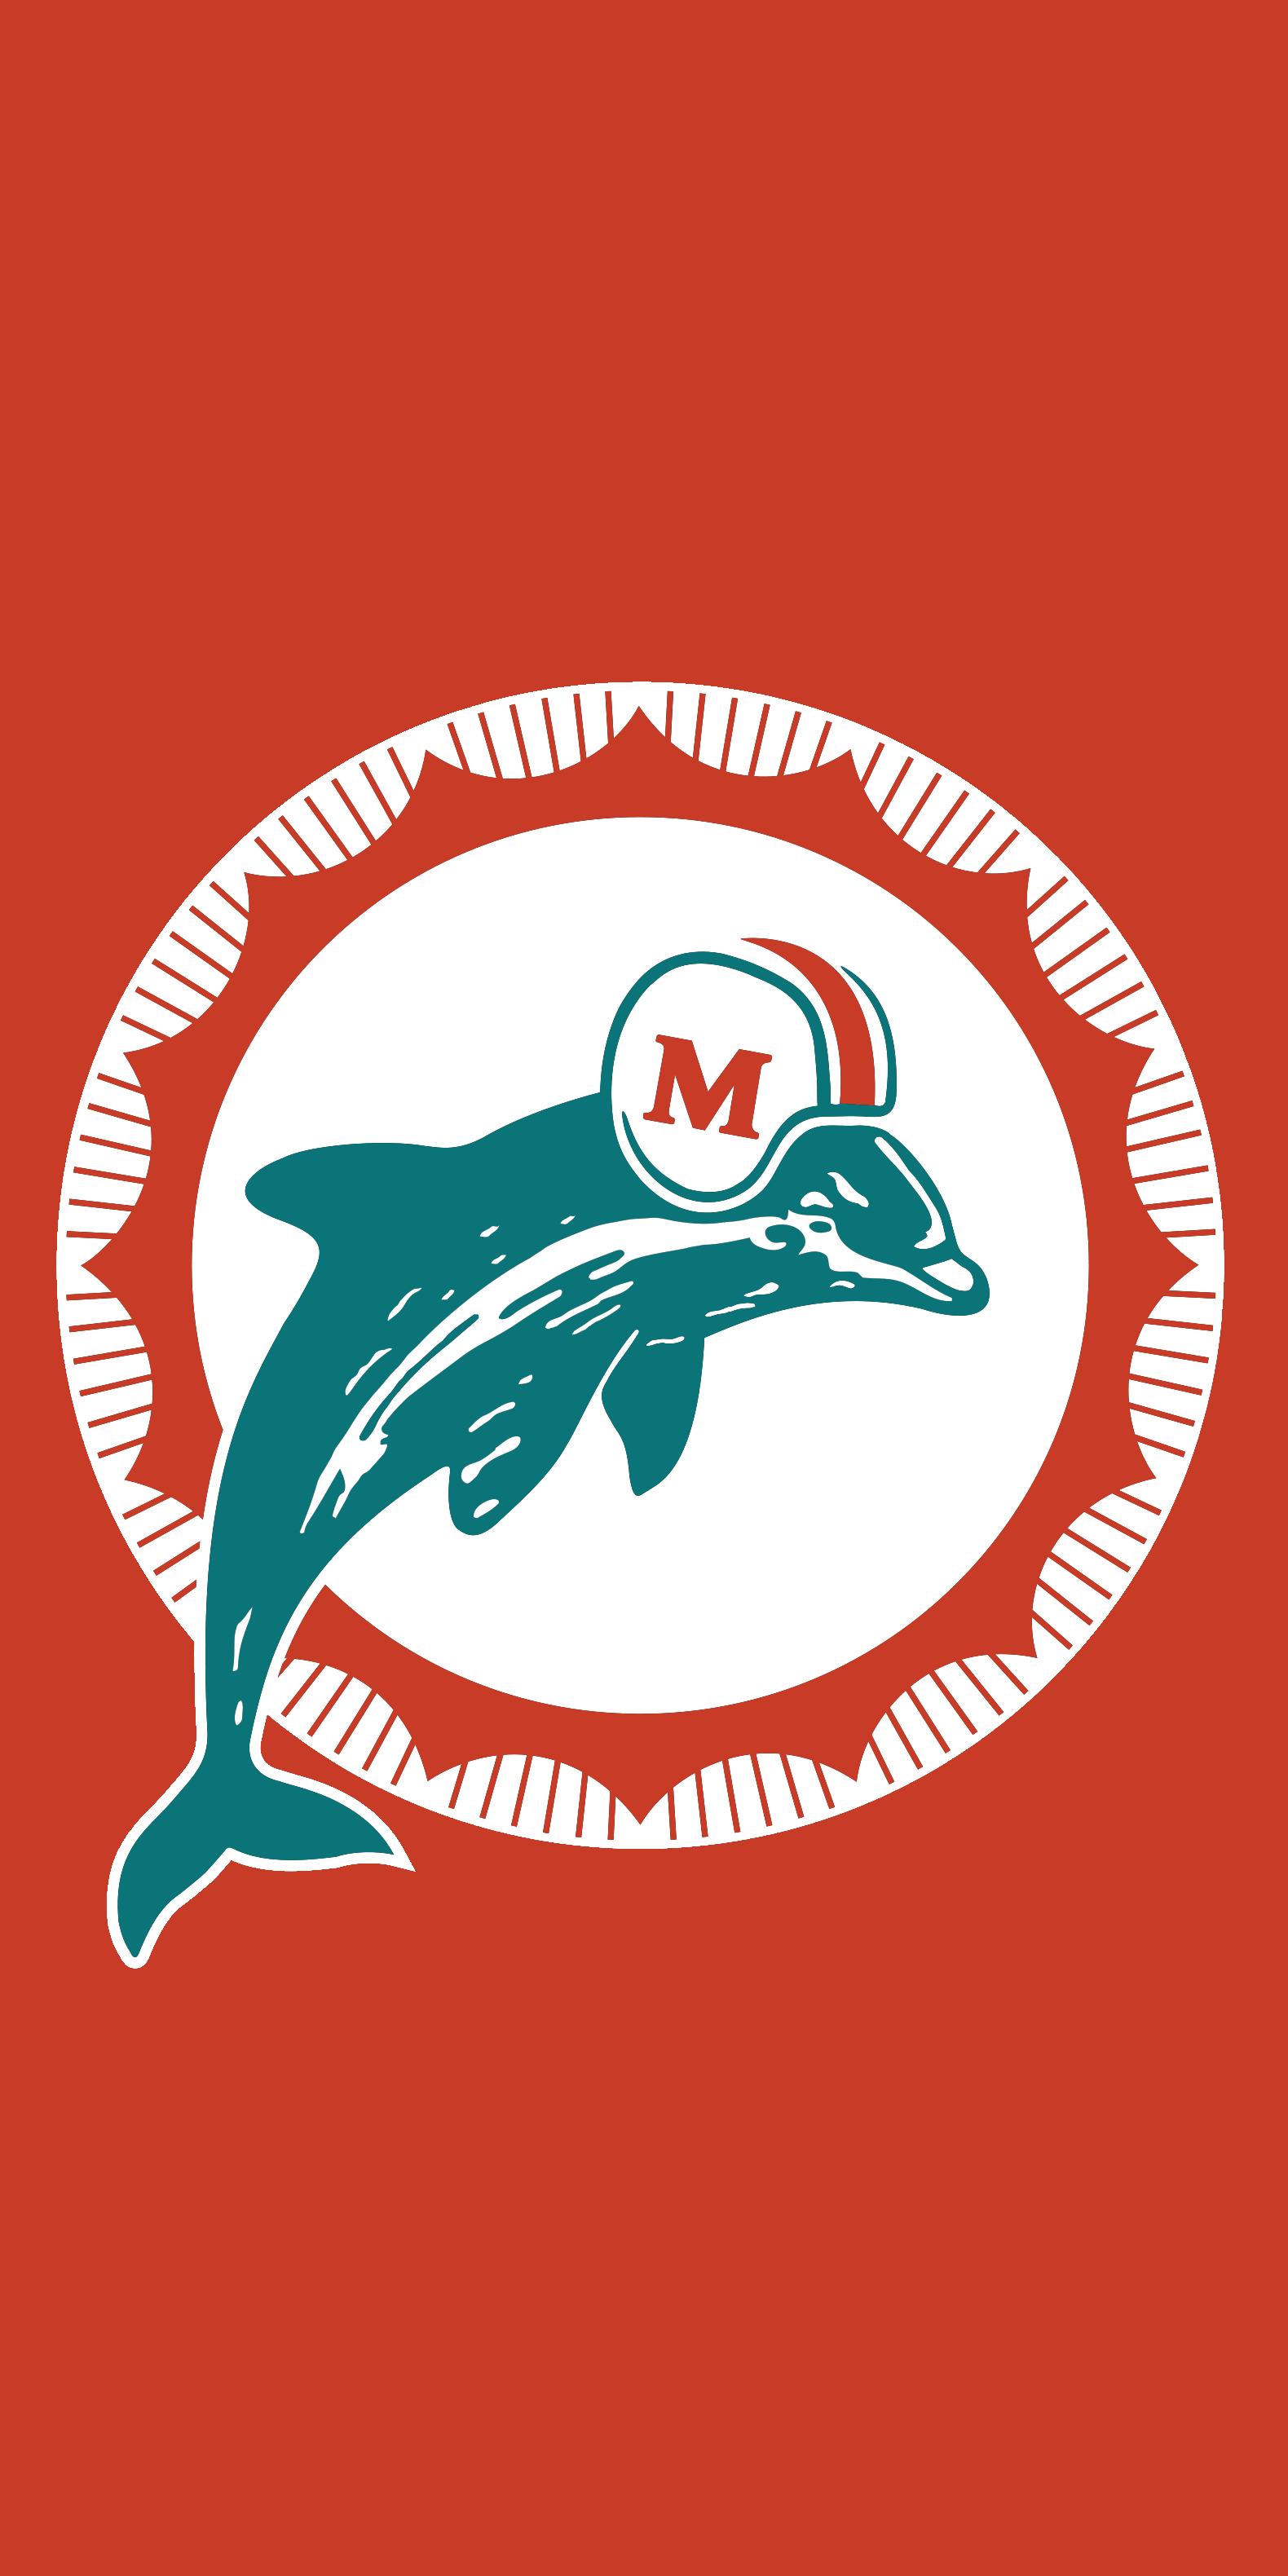 2f11aed4 Pin by Nicole Fraser on Sport teams I LOVE | Nfl miami dolphins ...